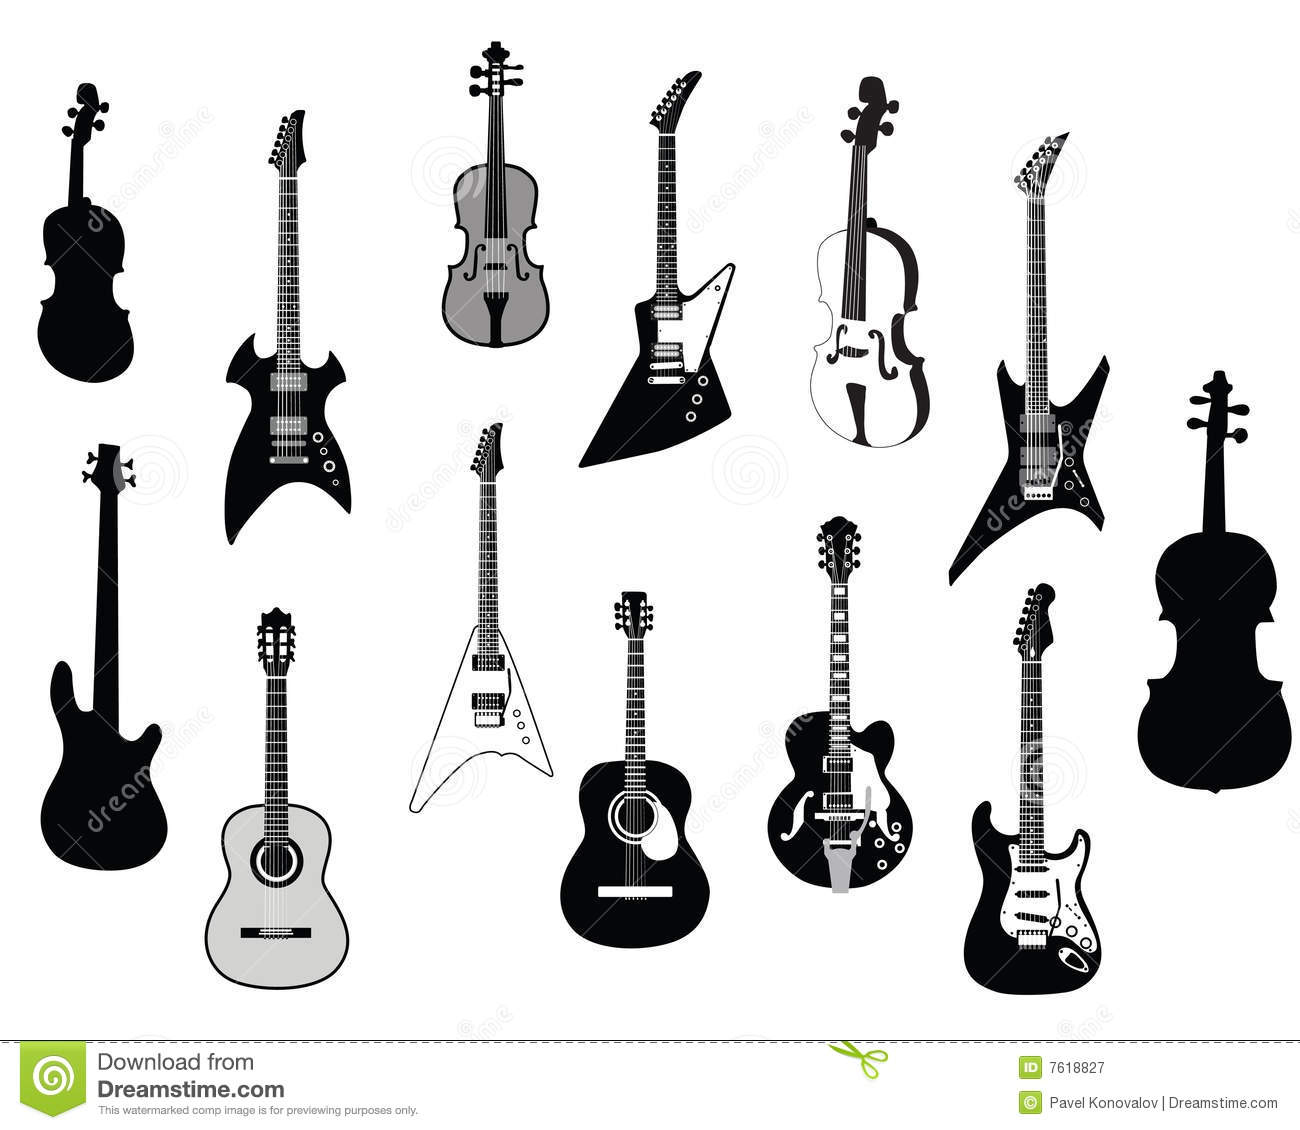 guitars silhouettes royalty free stock photography image bass guitar clipart black and white bass guitar clipart